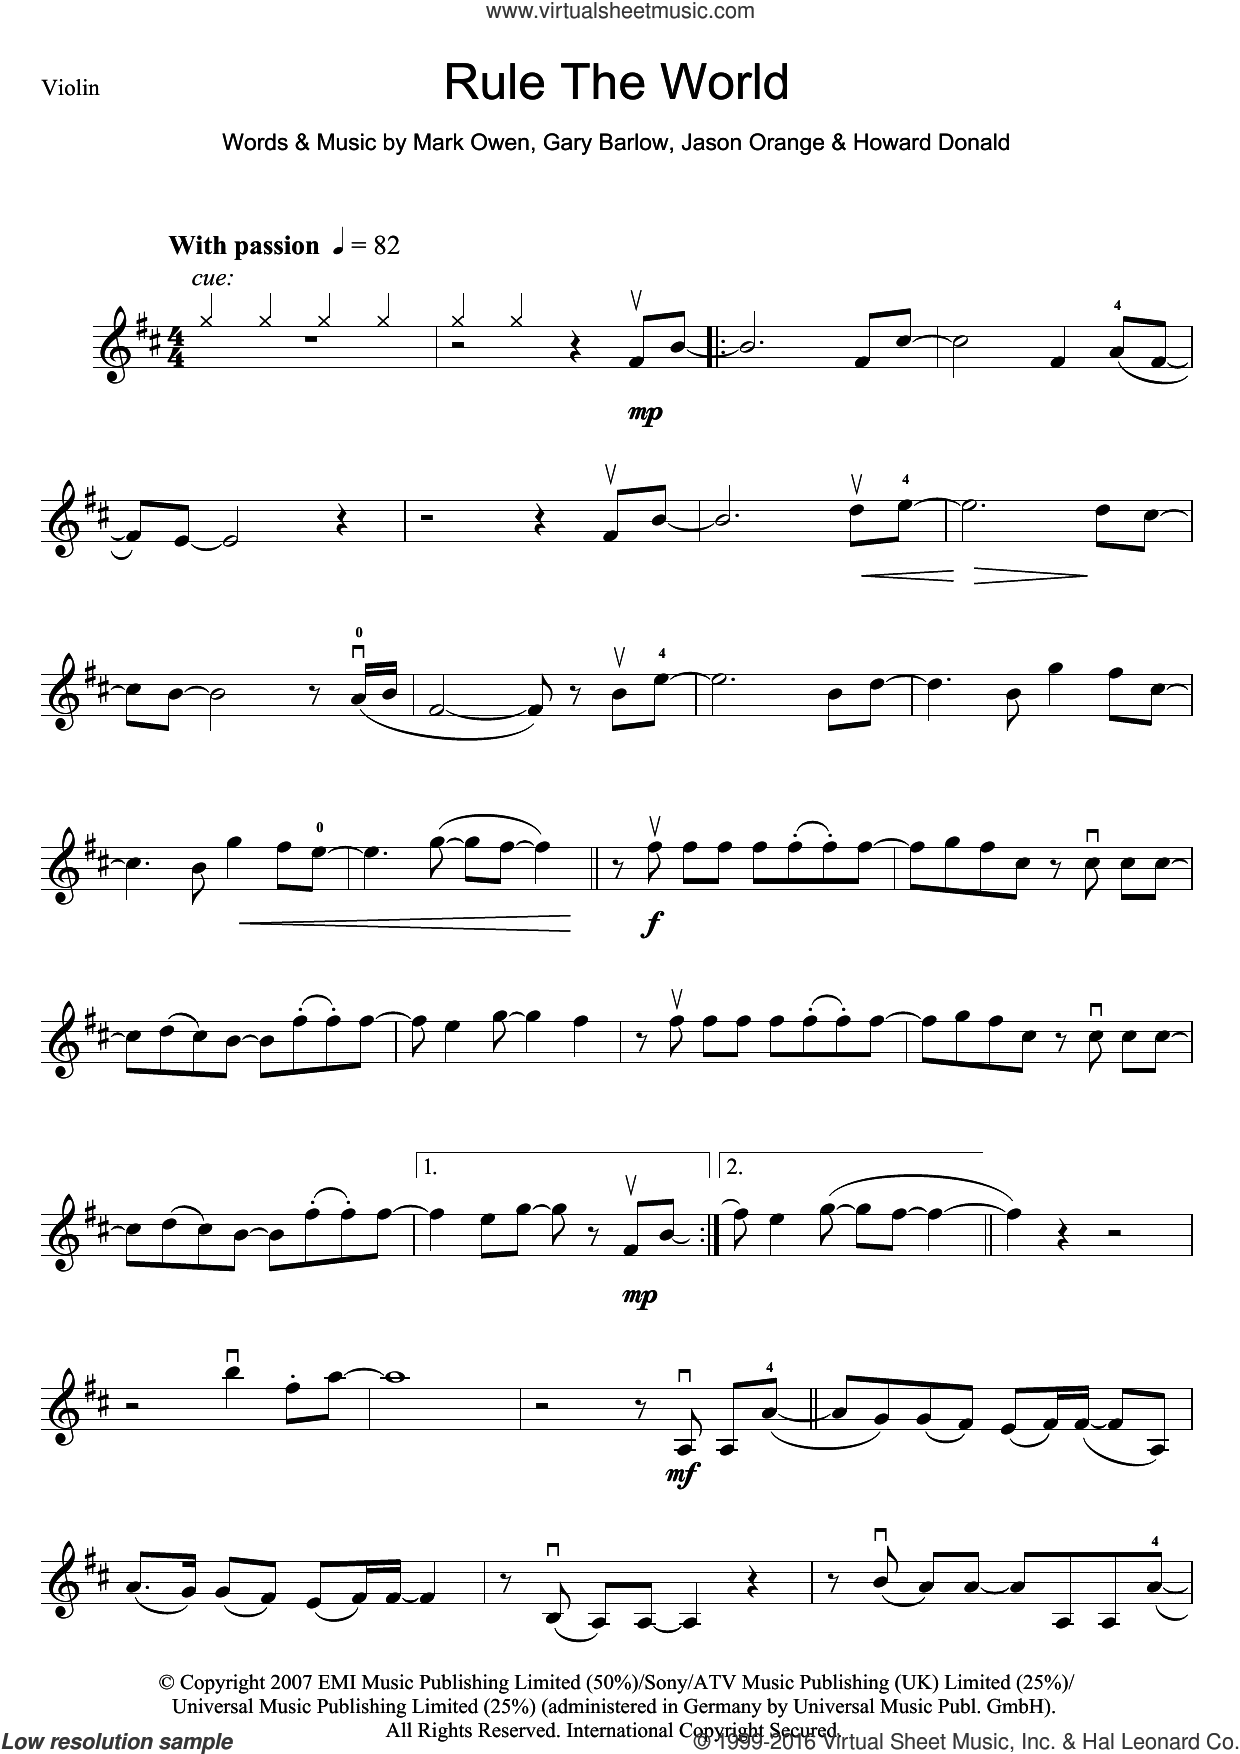 Rule The World (from Stardust) sheet music for violin solo by Take That, Gary Barlow, Howard Donald, Jason Orange and Mark Owen, intermediate skill level